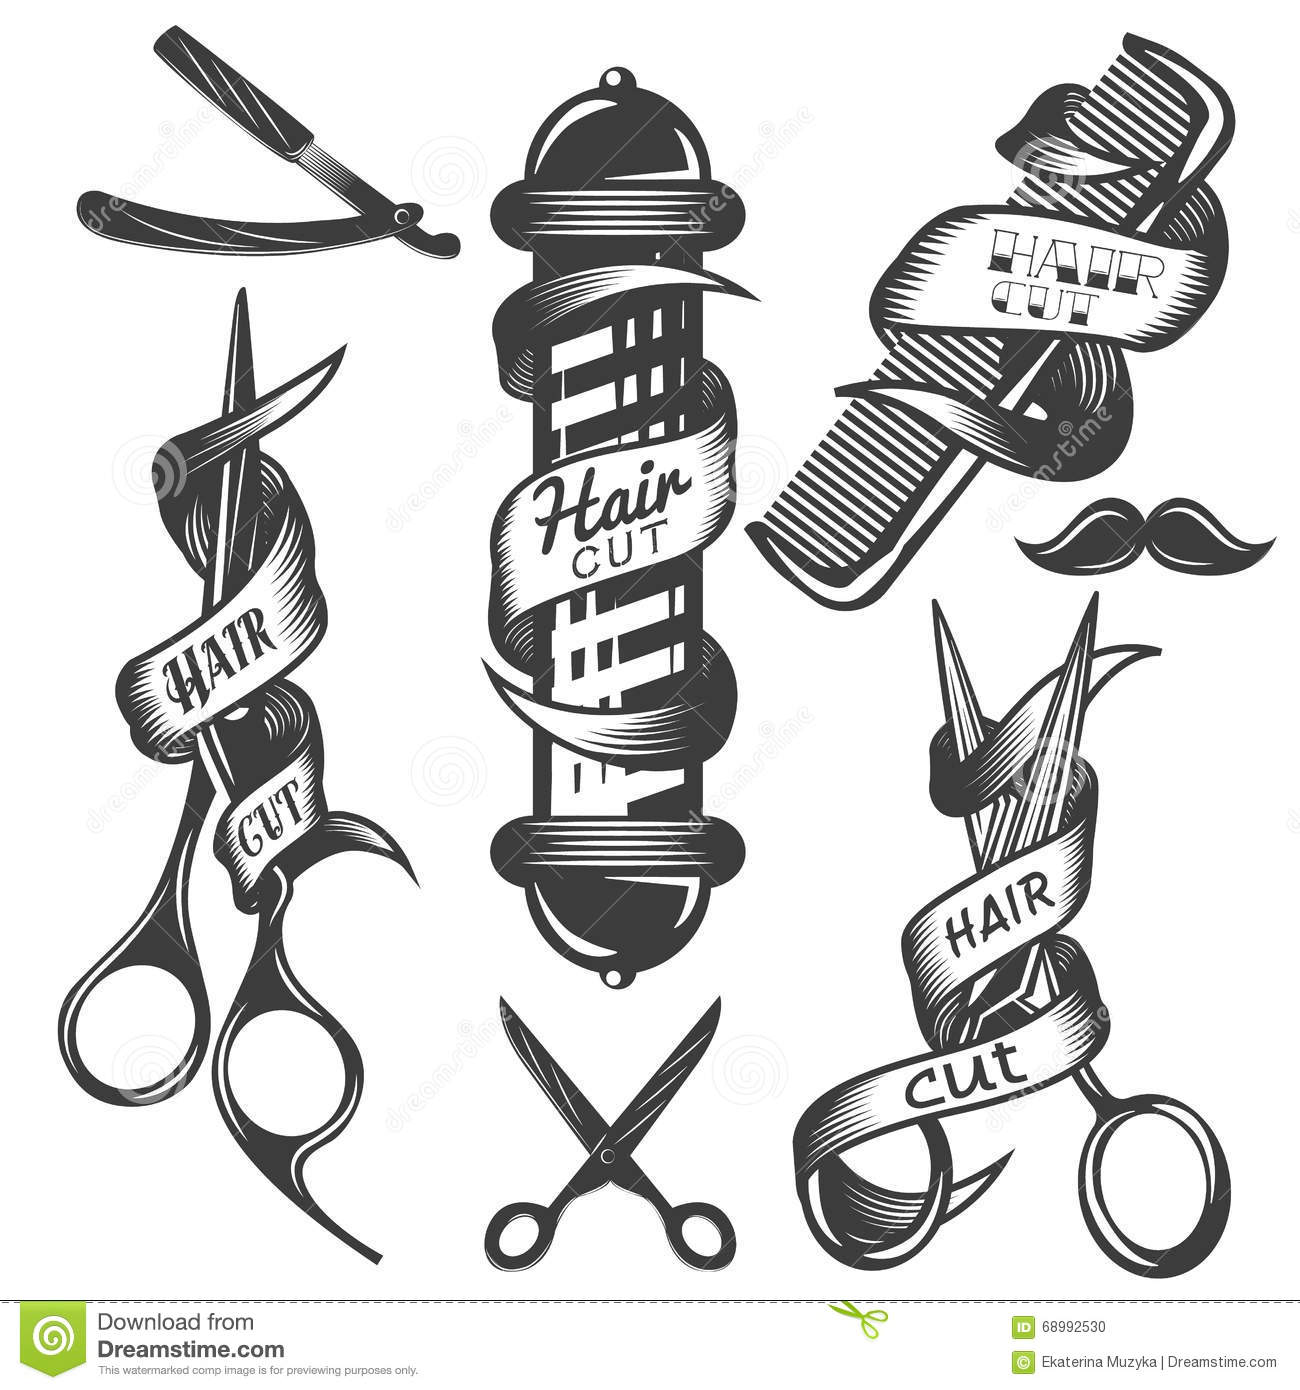 98cea005387 Vector set of hair salon vector labels in vintage style. Hair cut beauty  and barber shop, scissors, blade.